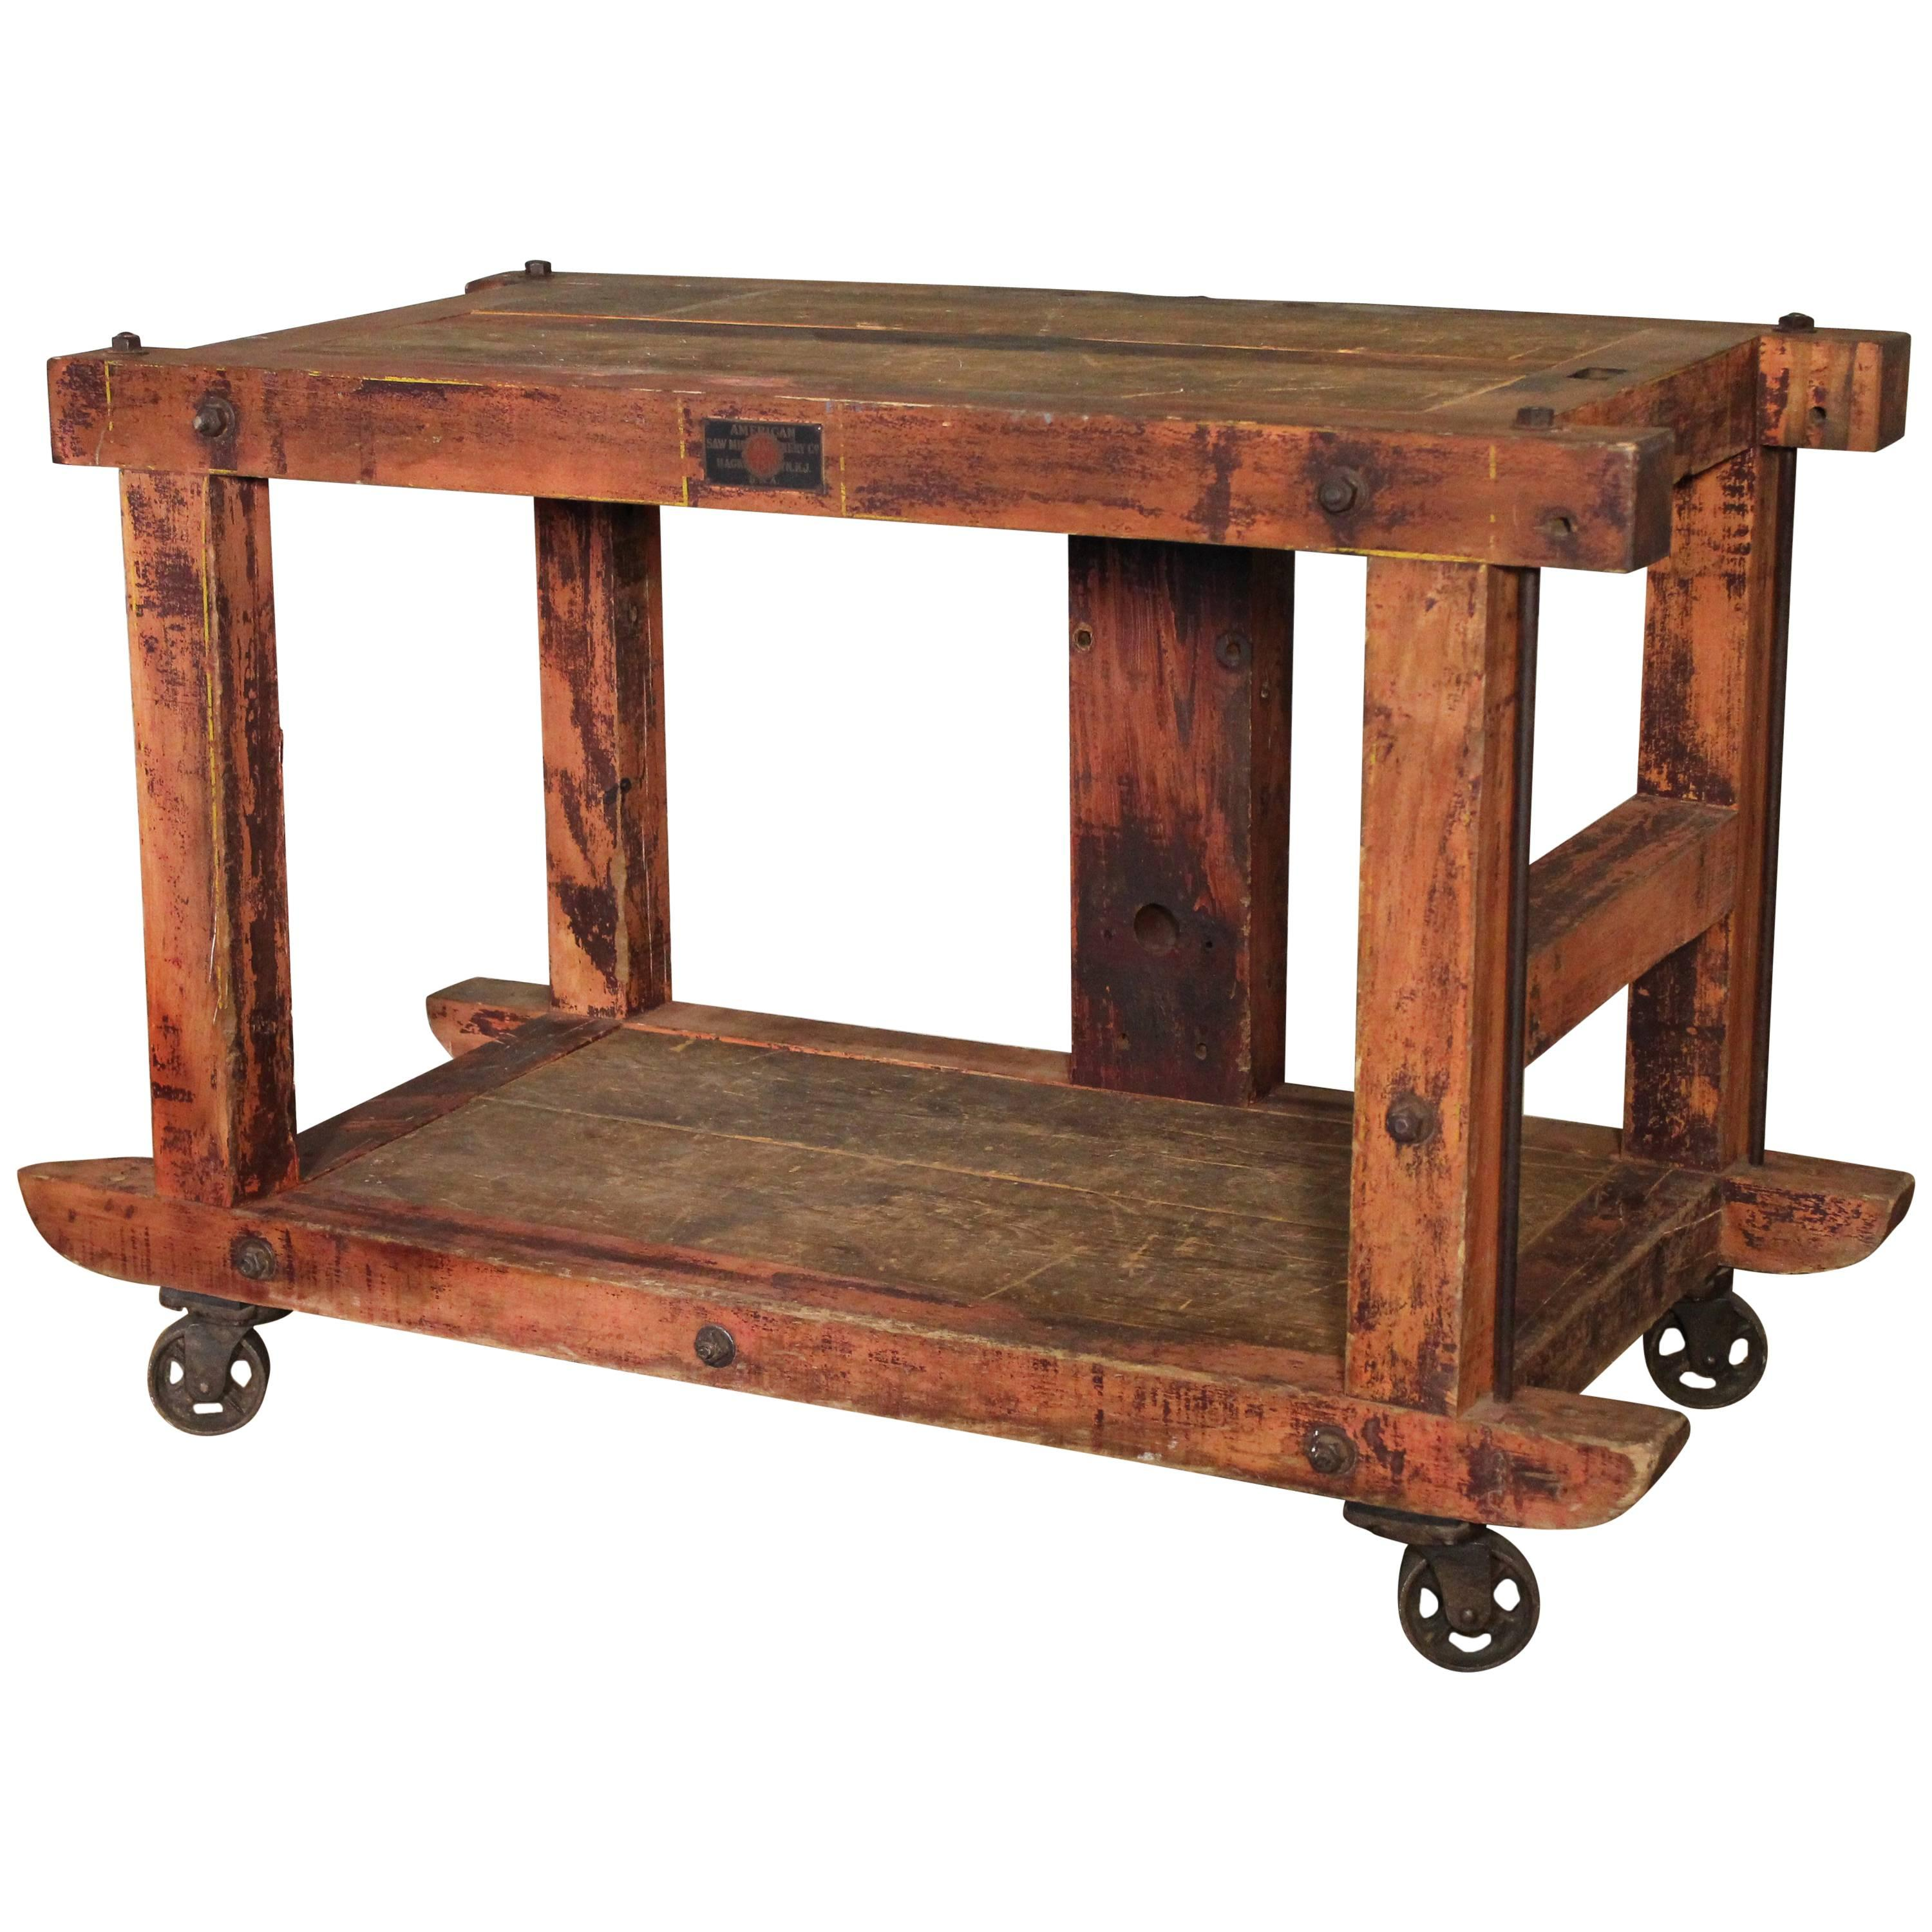 Rolling Kitchen Island Table Or Cart Rustic Vintage Wood, Metal And Cast  Iron For Sale